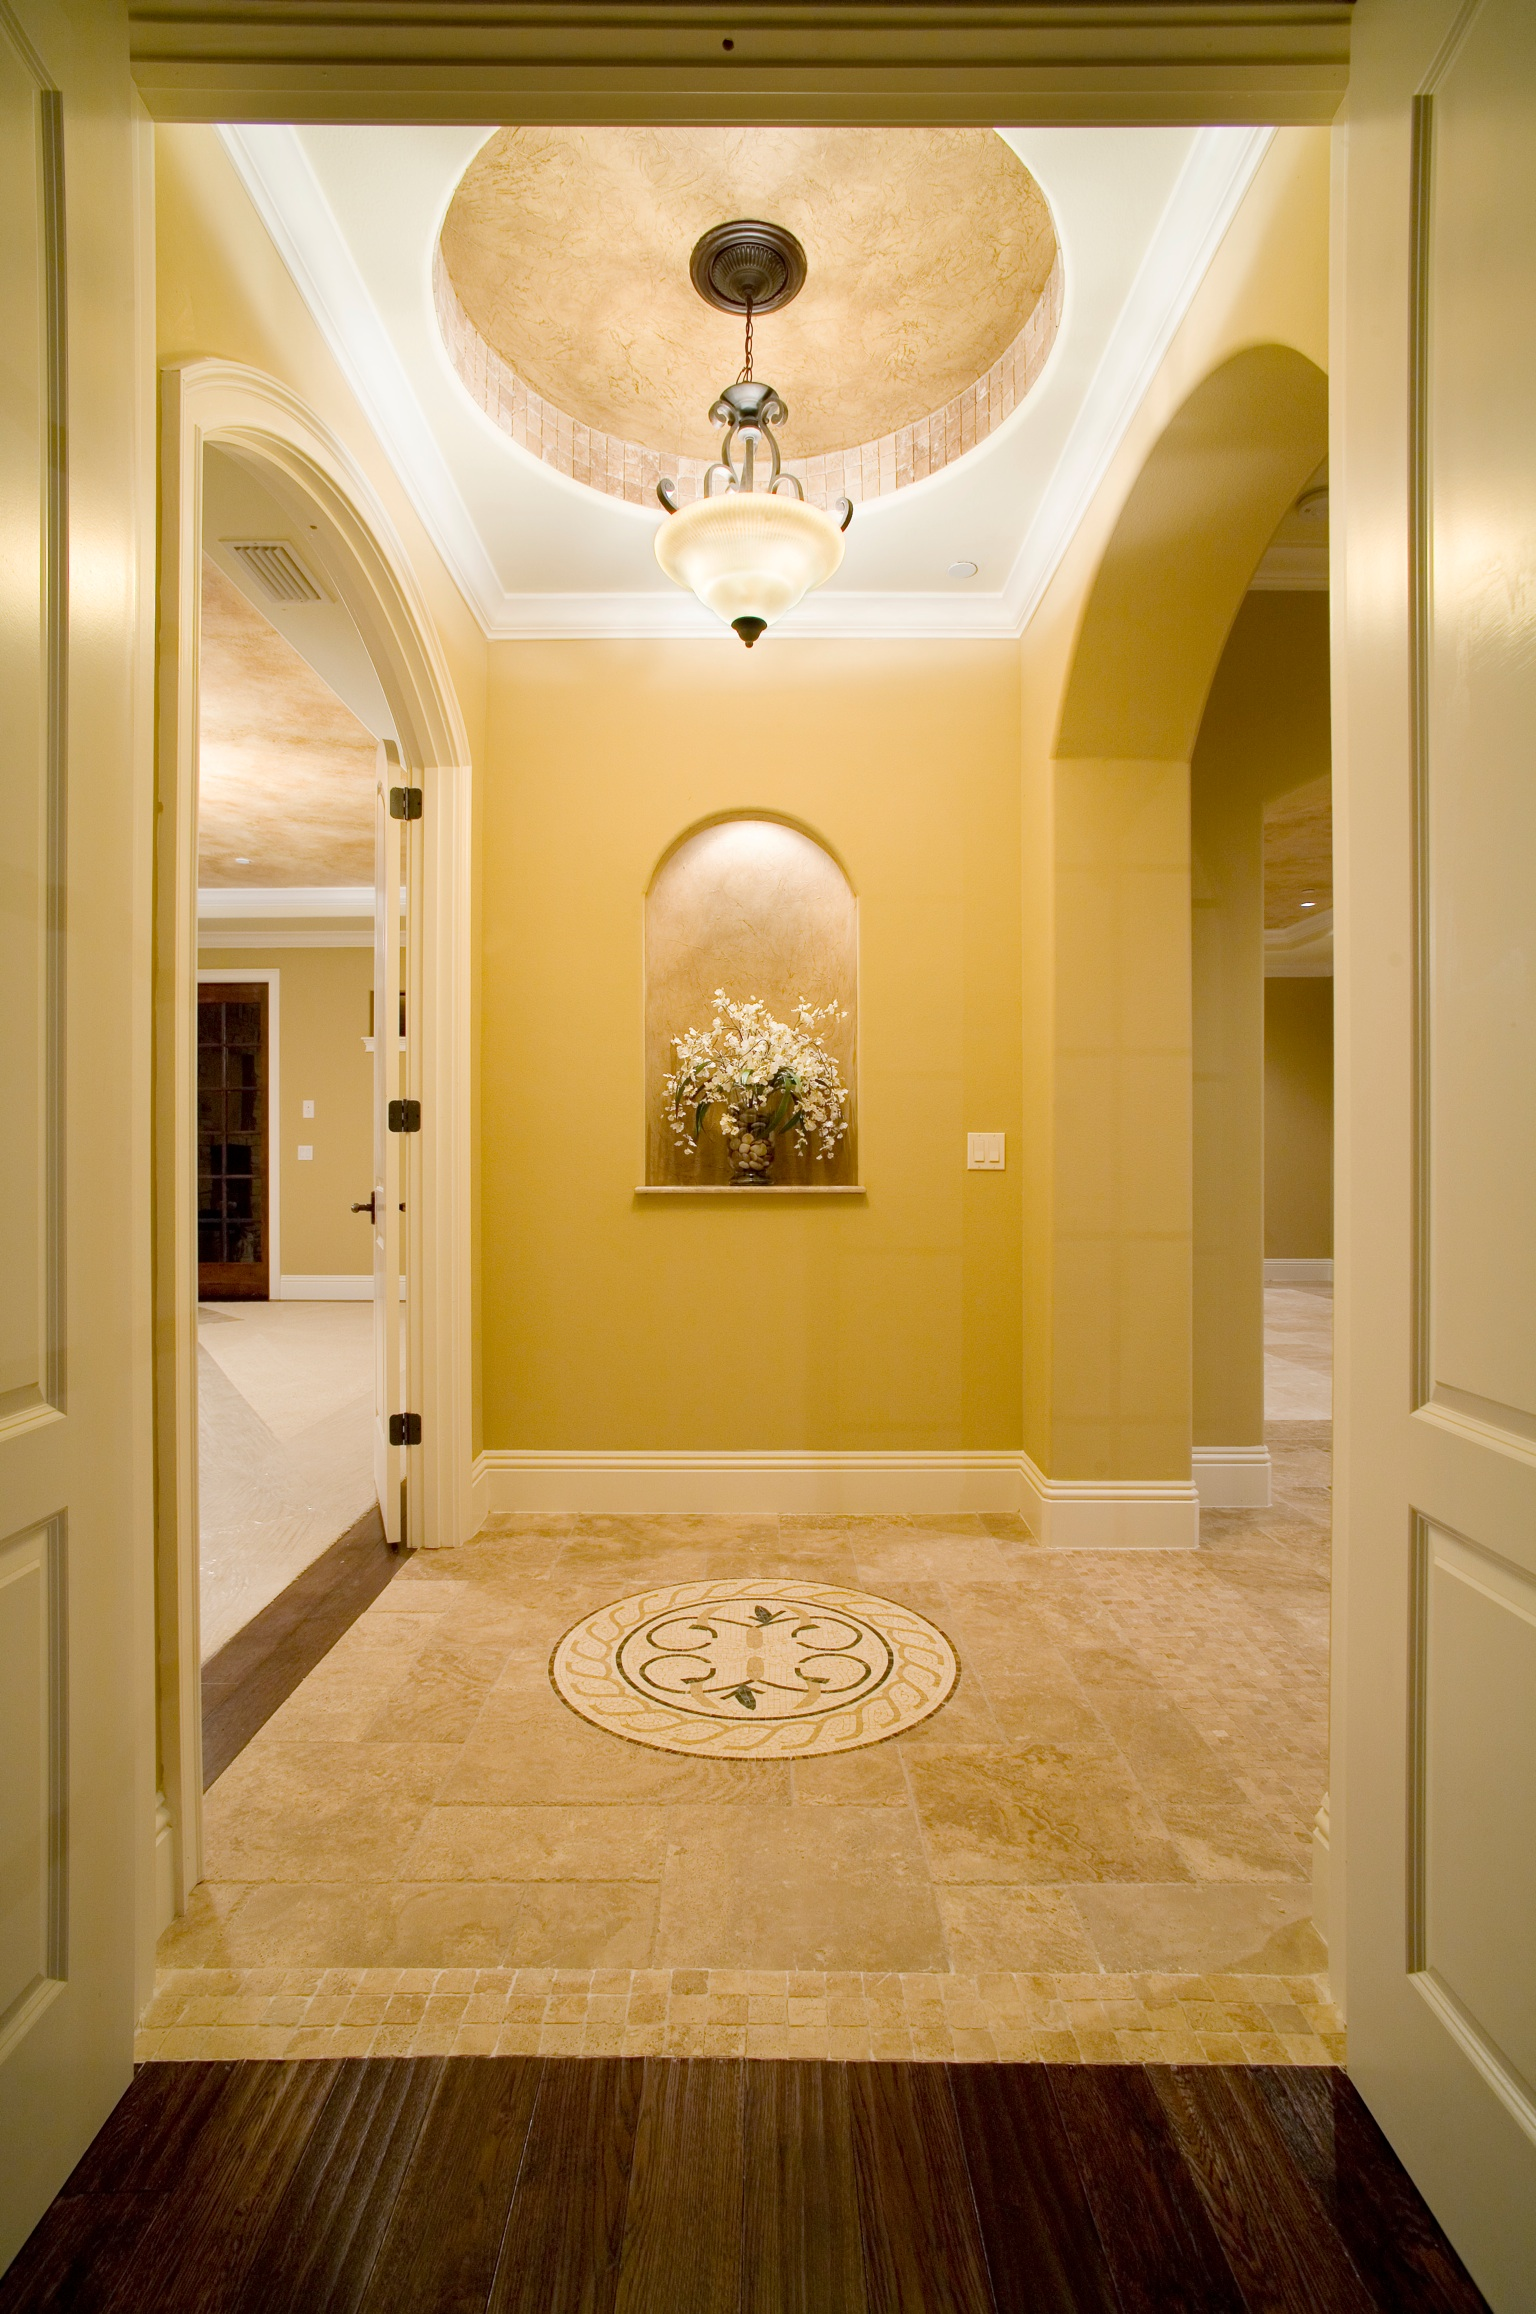 Home Design Image Ideas Home Vestibule Ideas